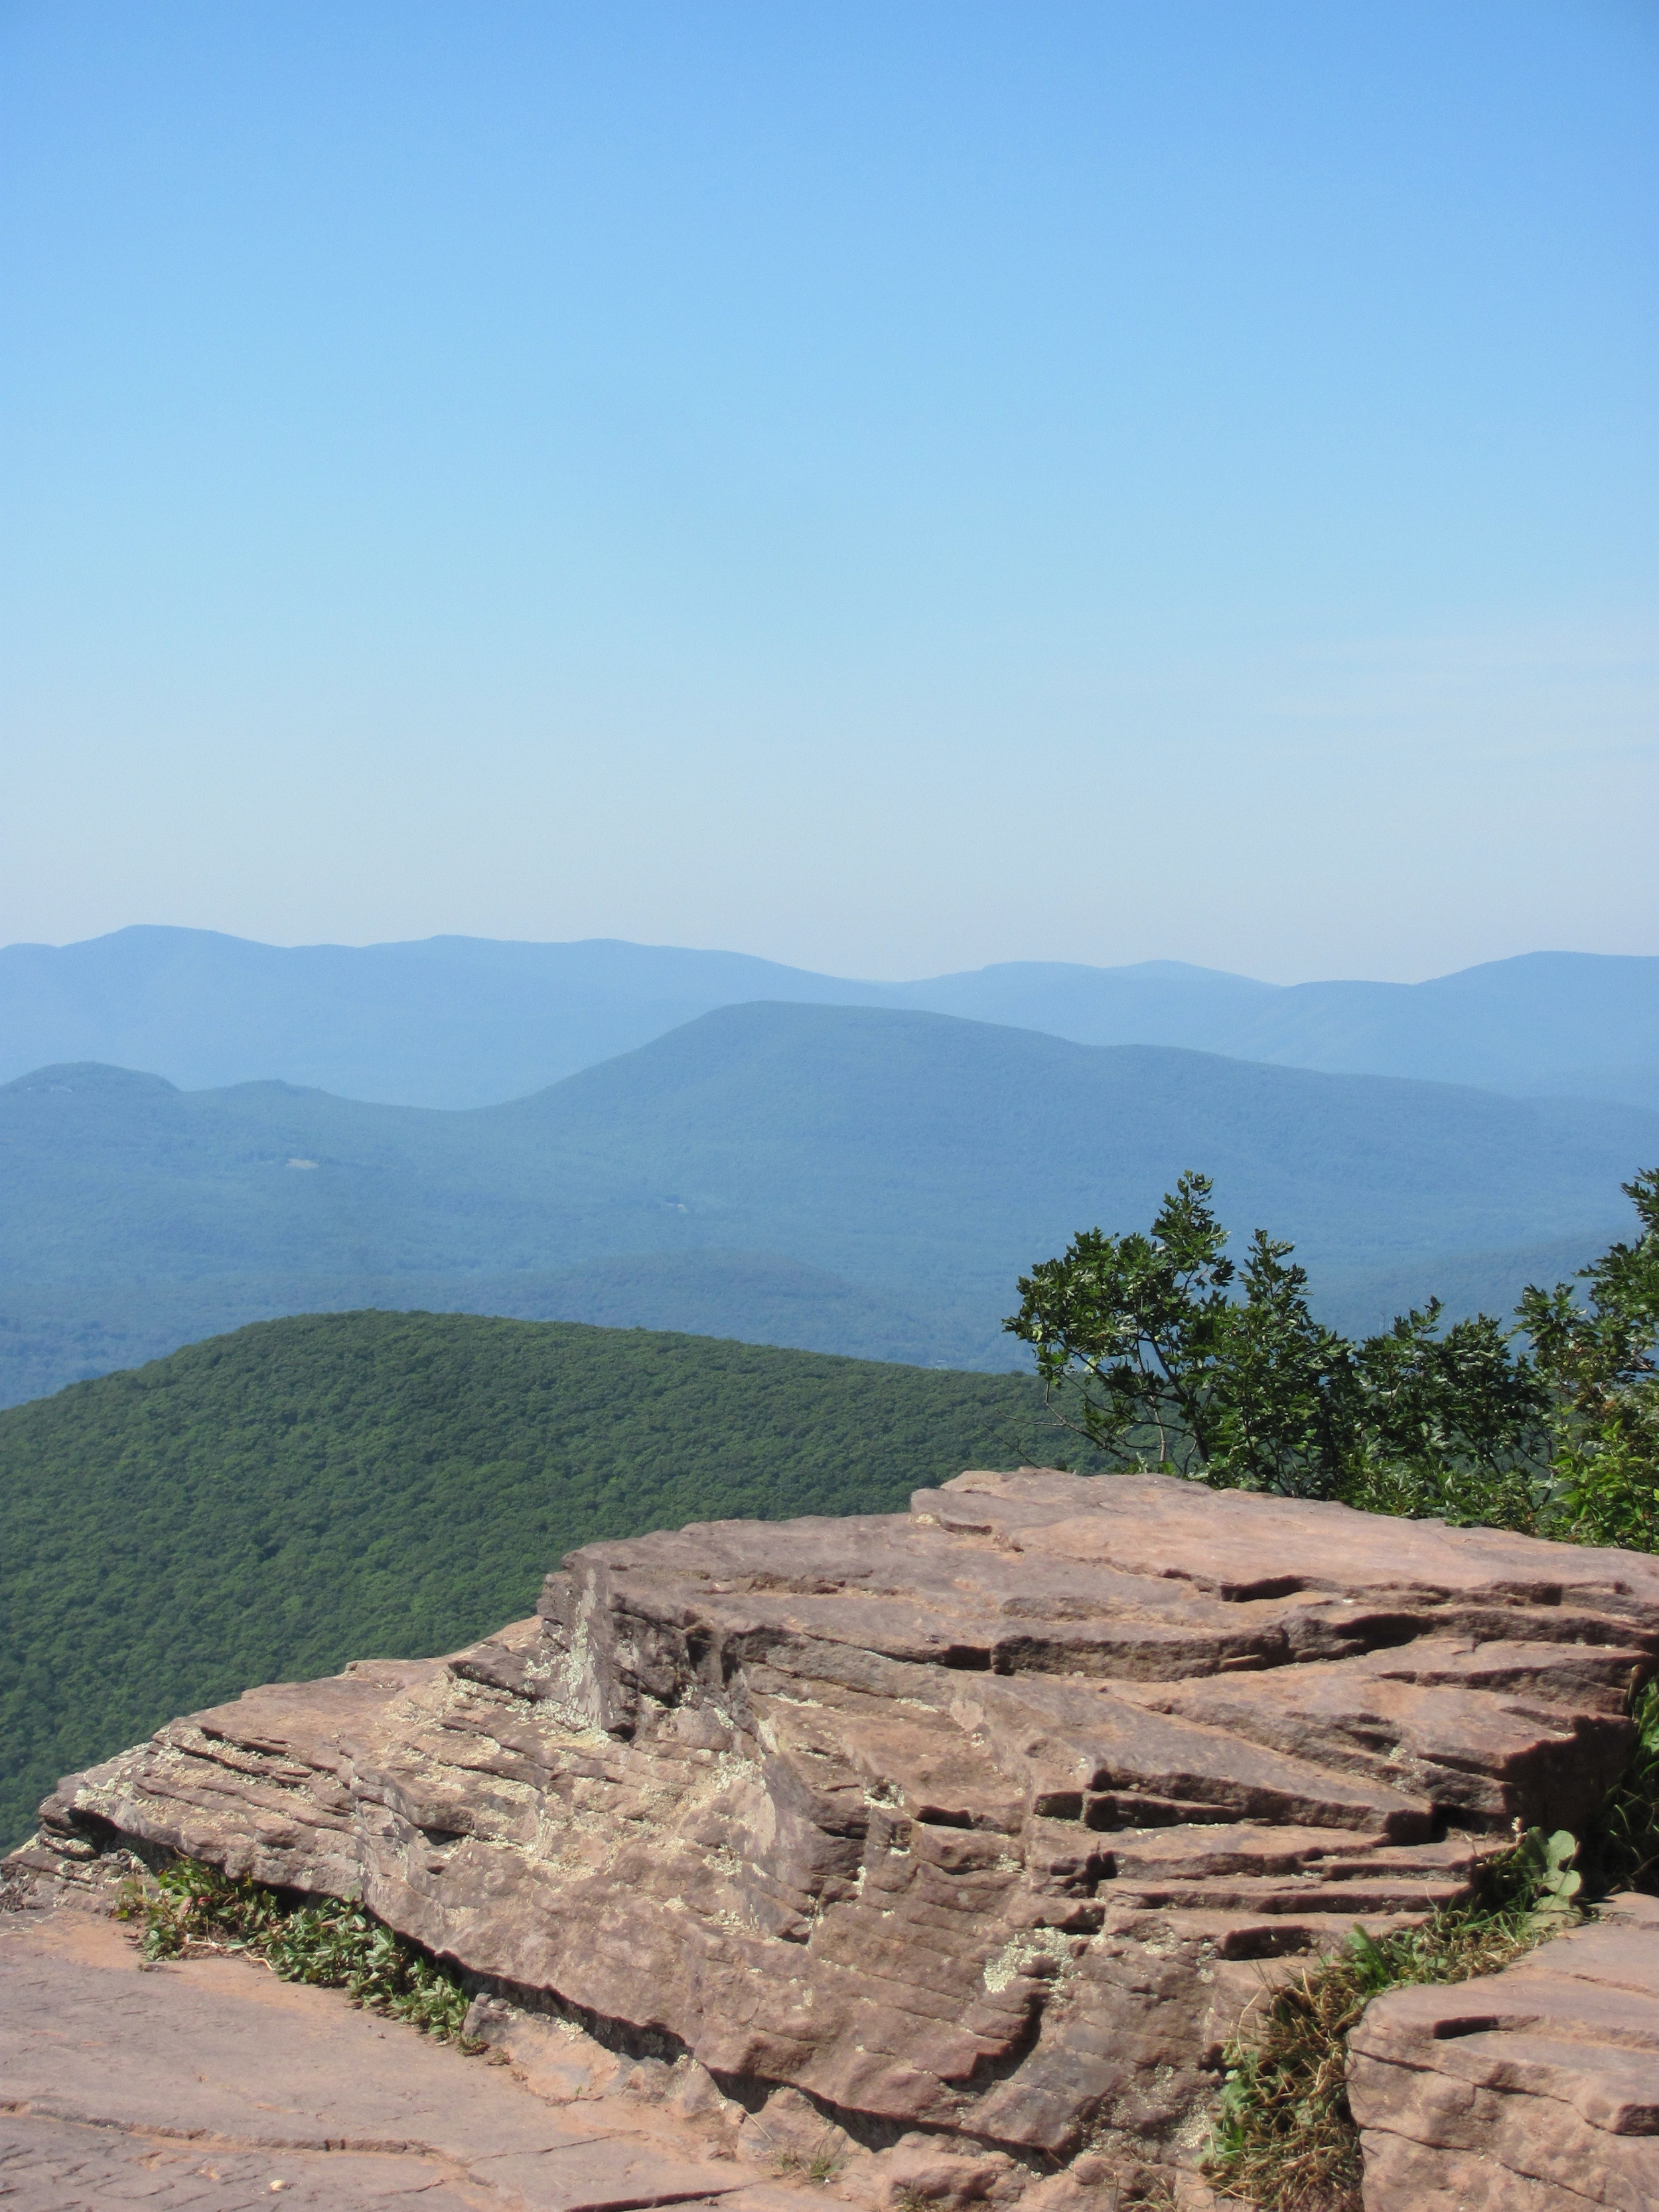 Here's some, now! This is a shot from the top of Overlook Mountain (R).